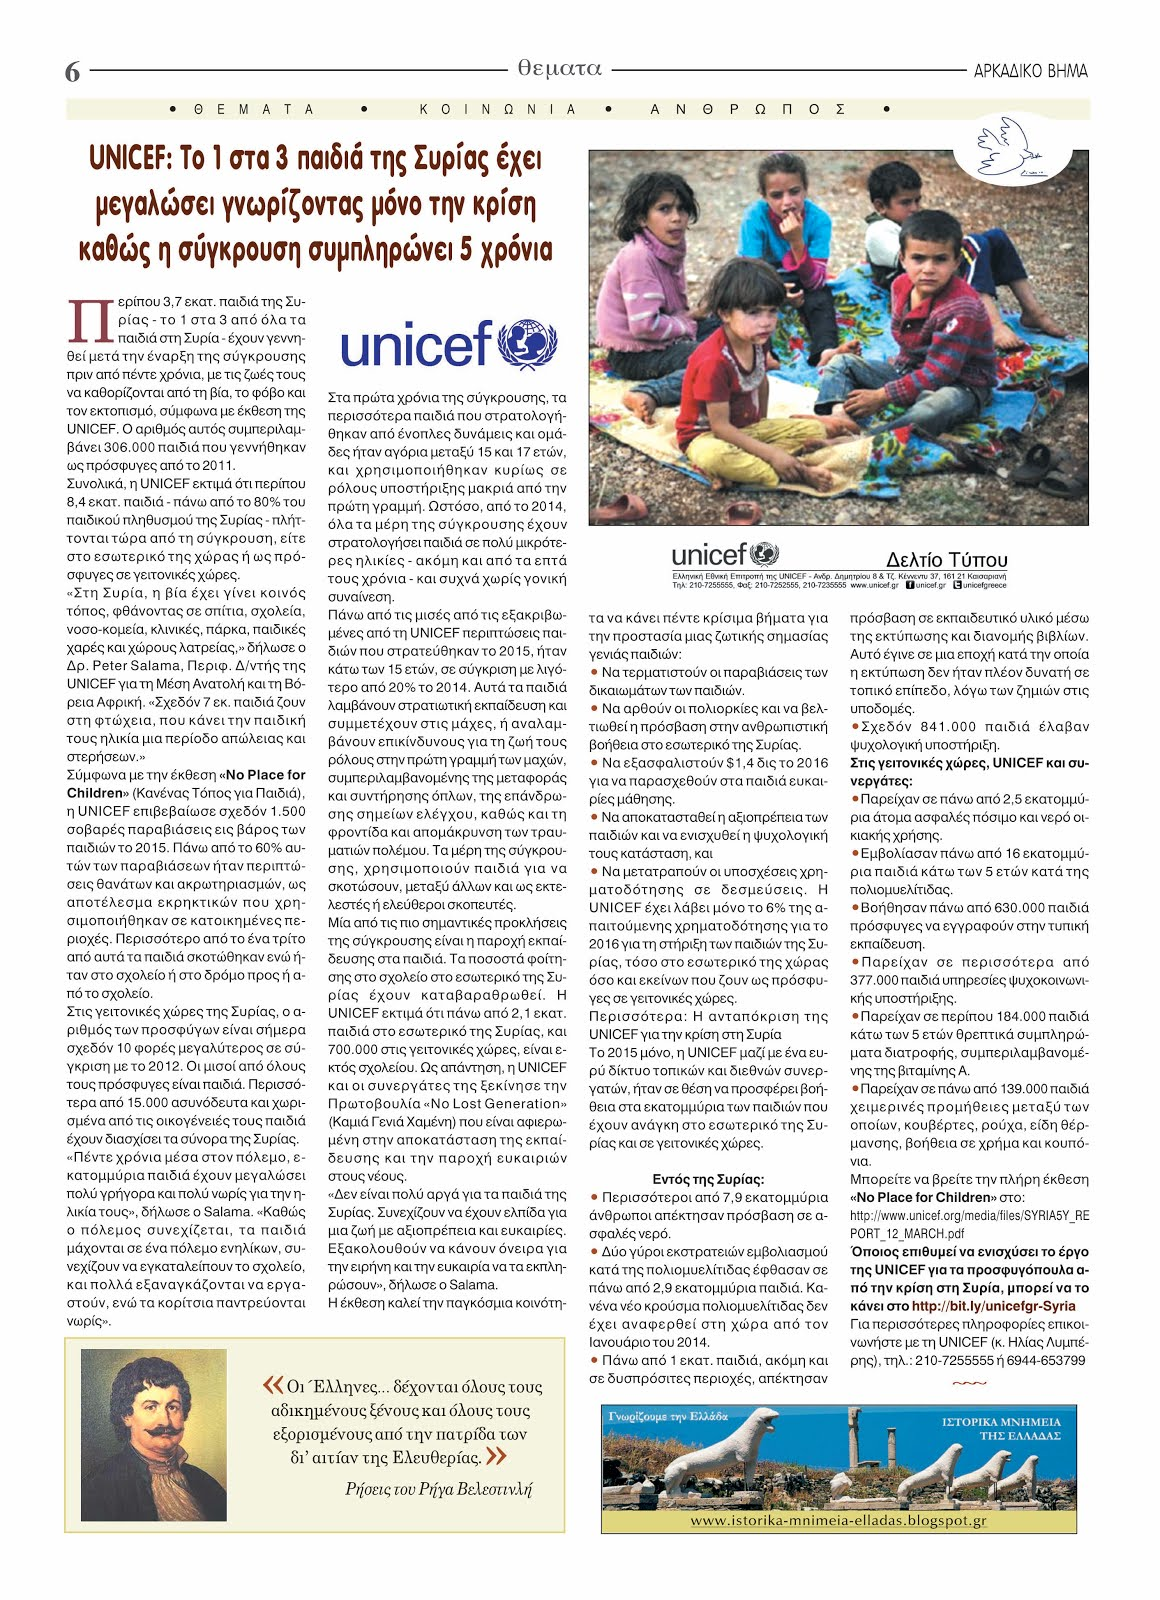 UNICEF: Το ένα στα τρία παιδιά της Συρίας